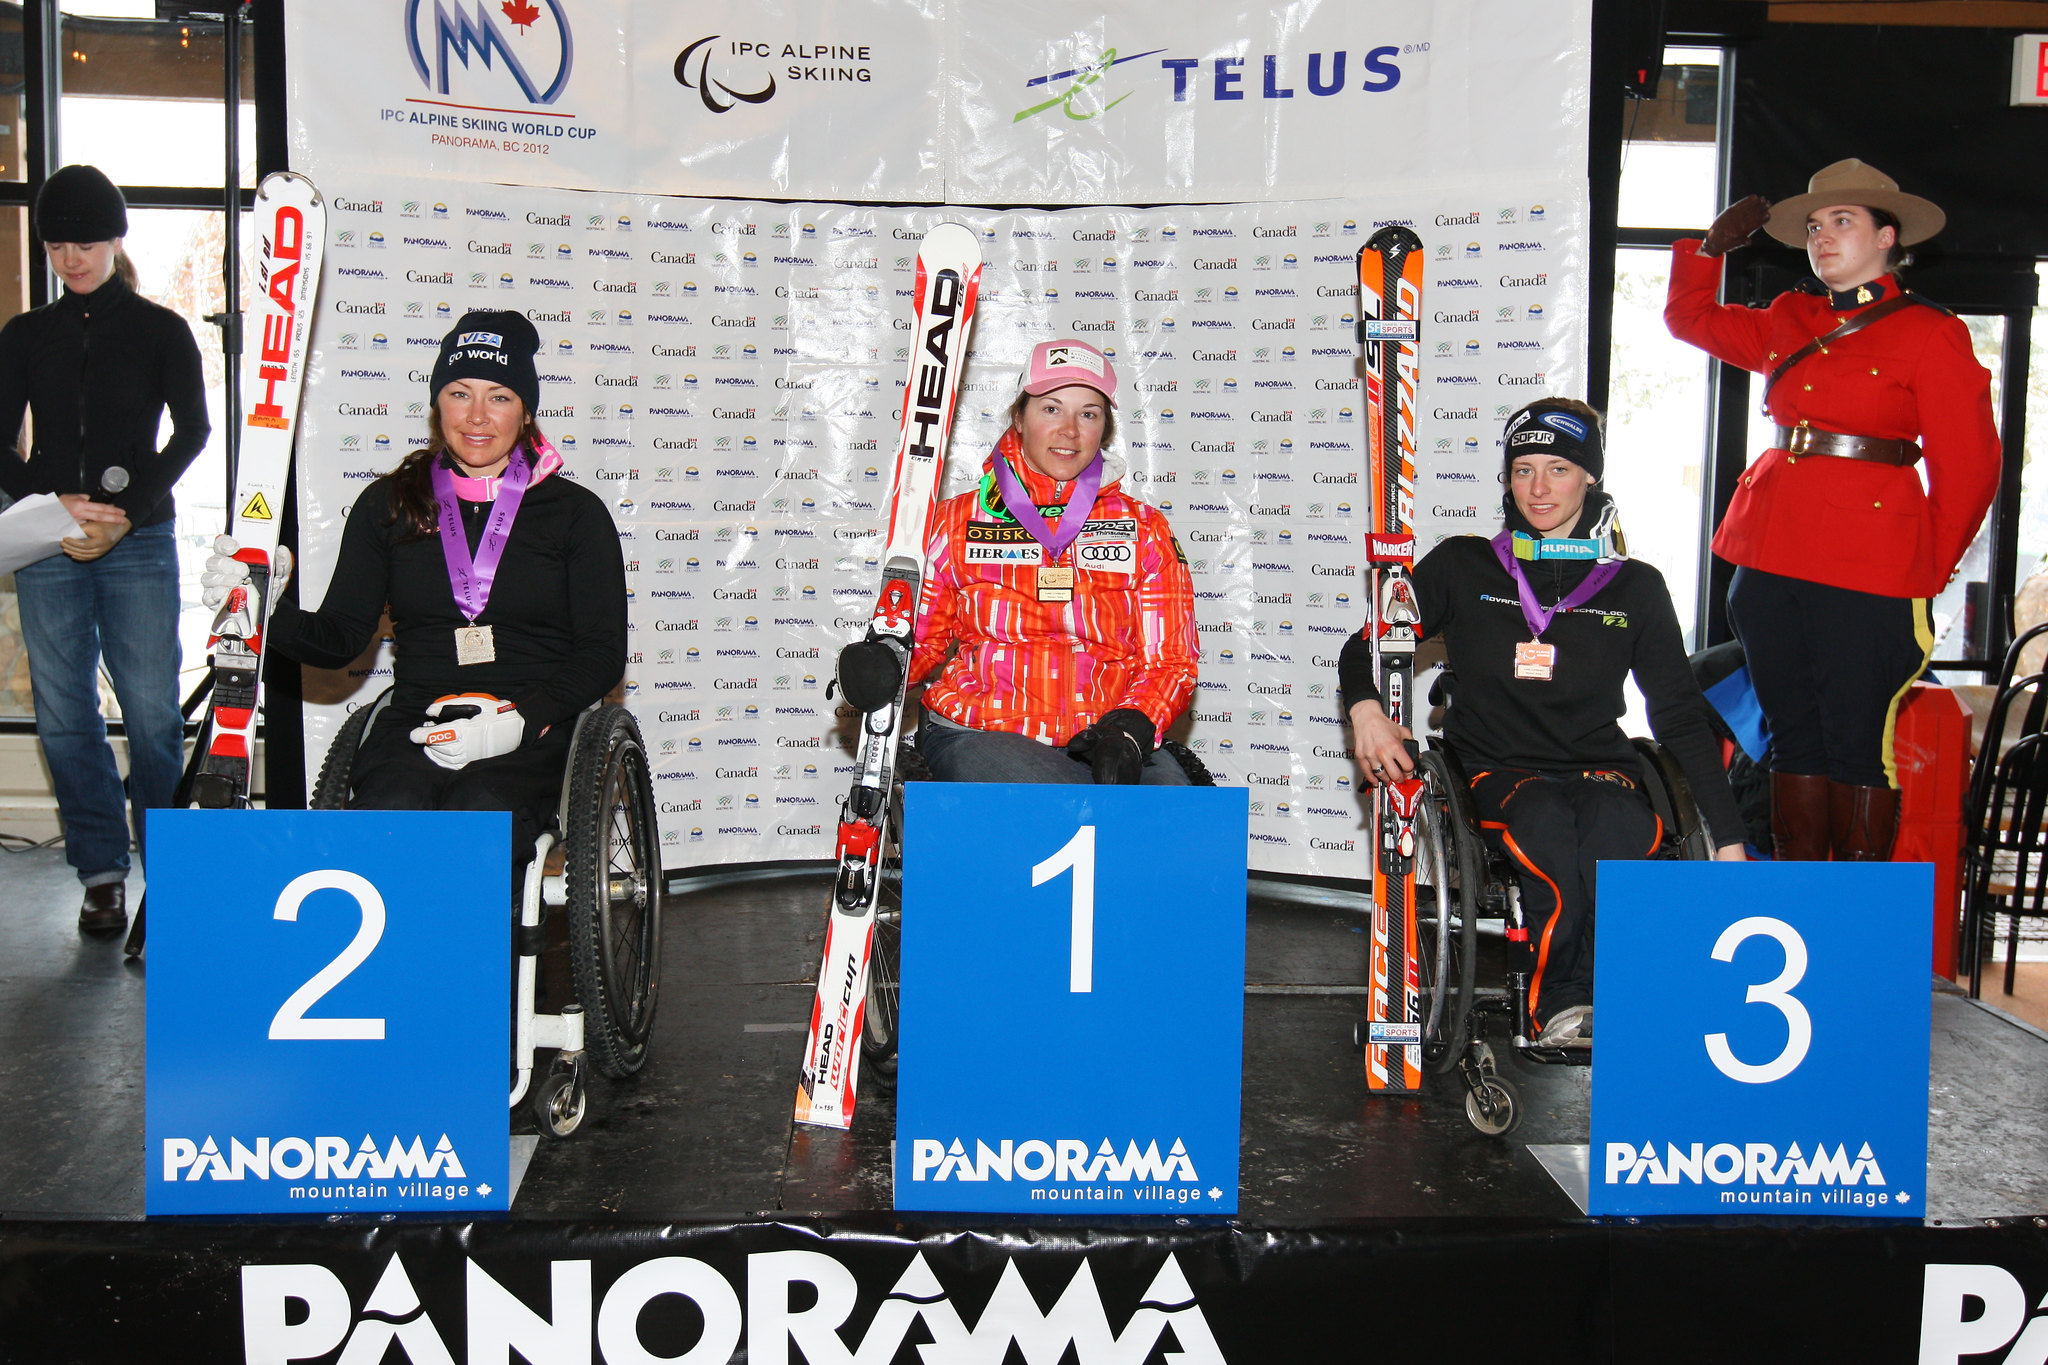 Kimberly Joines on the podium after winning gold in an IPC World Cup super combined in Panorama, B.C.